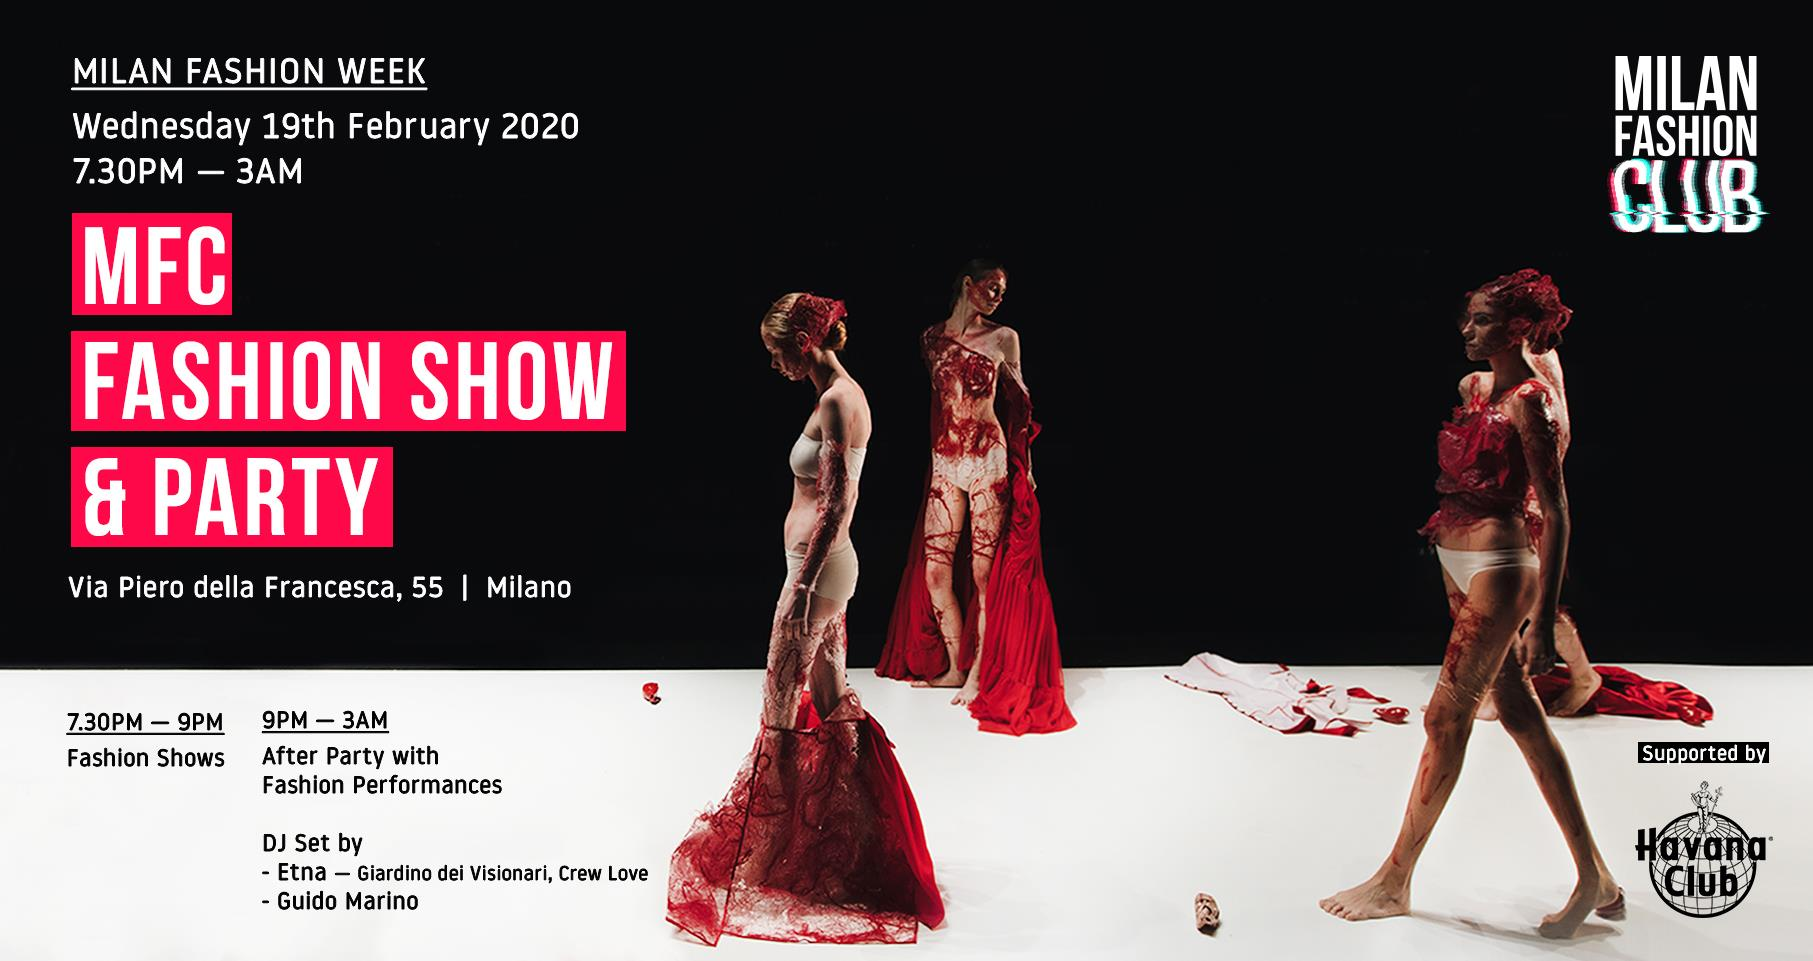 MFC FASHION SHOW & PARTY YOUparti fashion week 55 Milano party